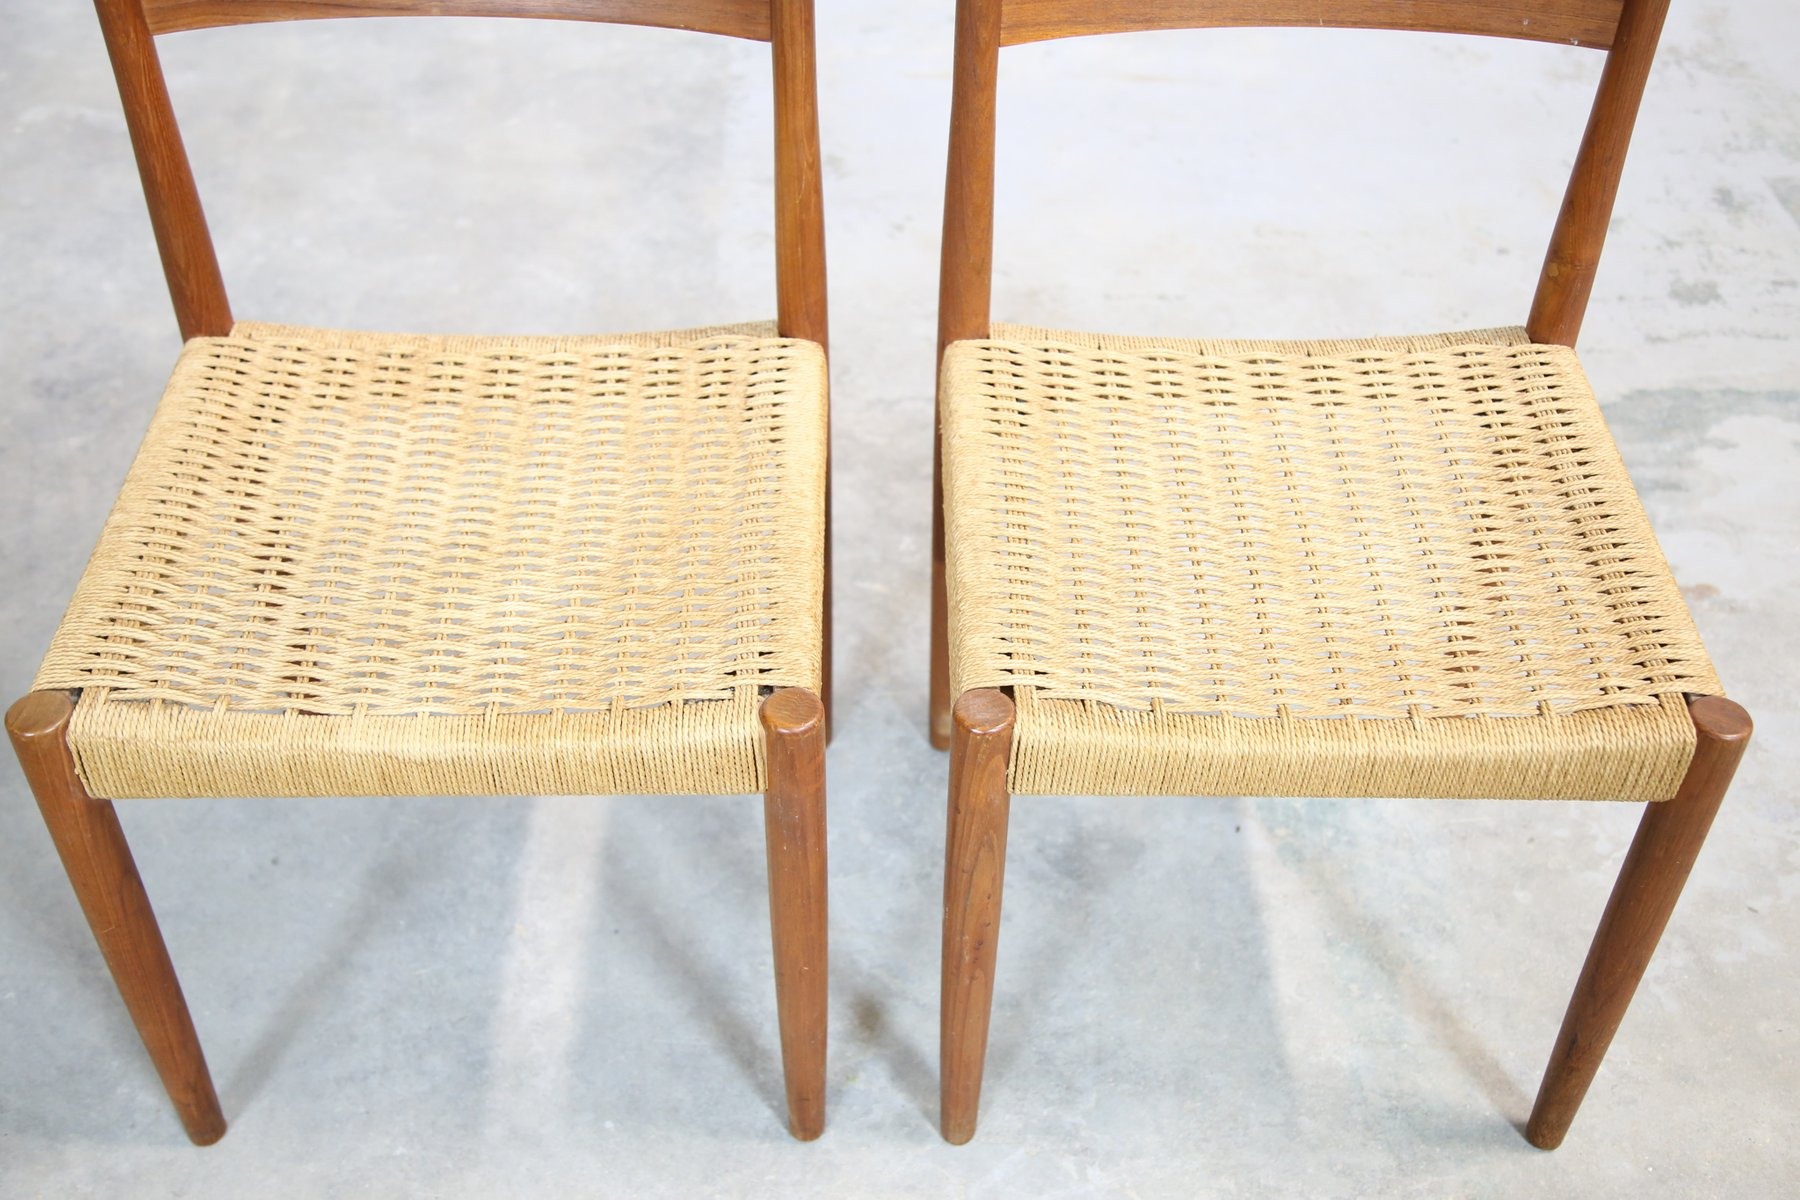 Superb Danish Teak Chairs With Woven Seats, 1960s, Set Of 2